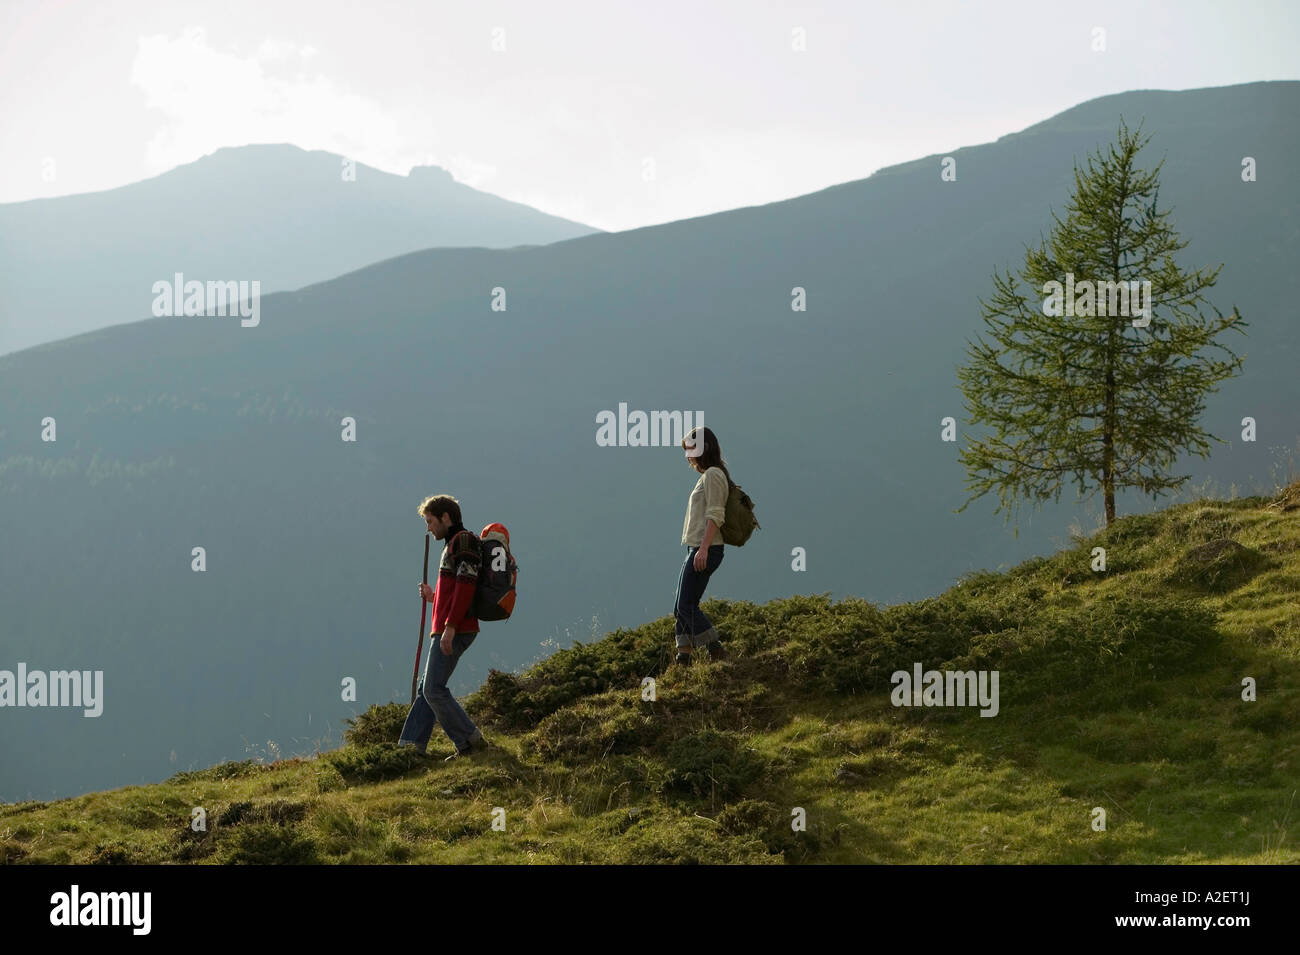 Young couple walking in mountains - Stock Image